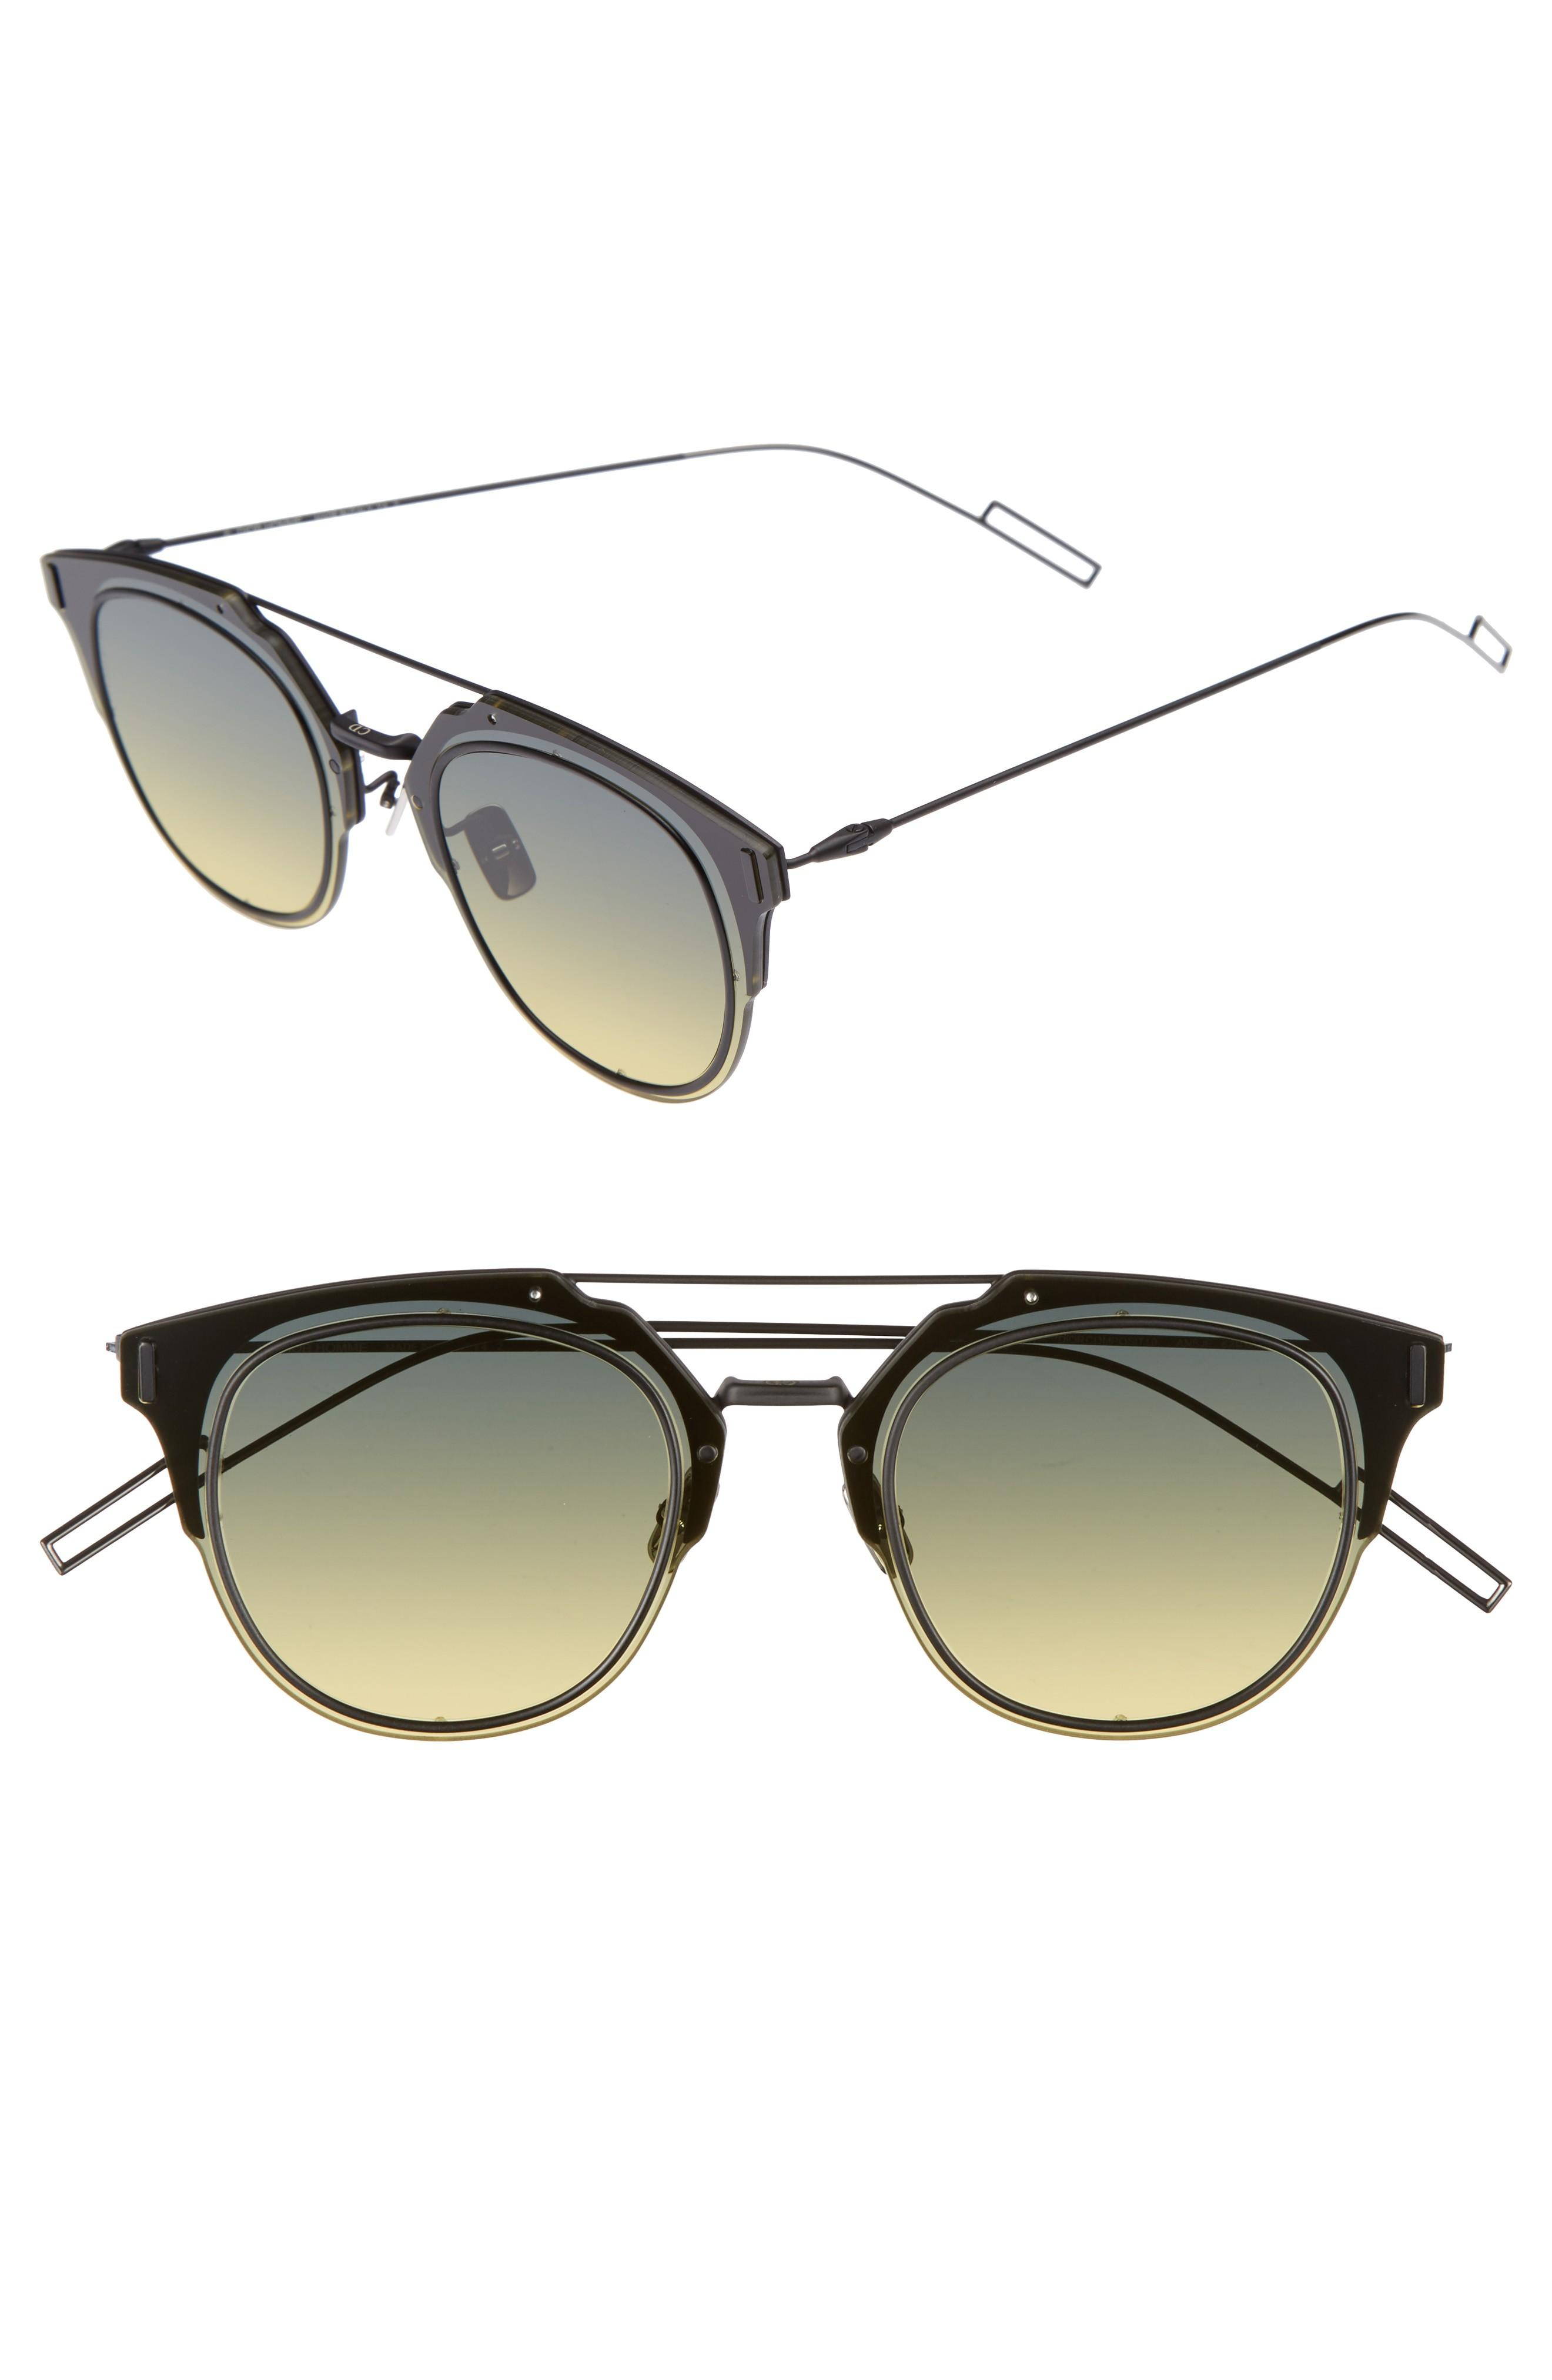 5de2028ea3 Dior Homme  Composit 1.0S  62Mm Metal Shield Sunglasses - Black Dark  Ruthenium